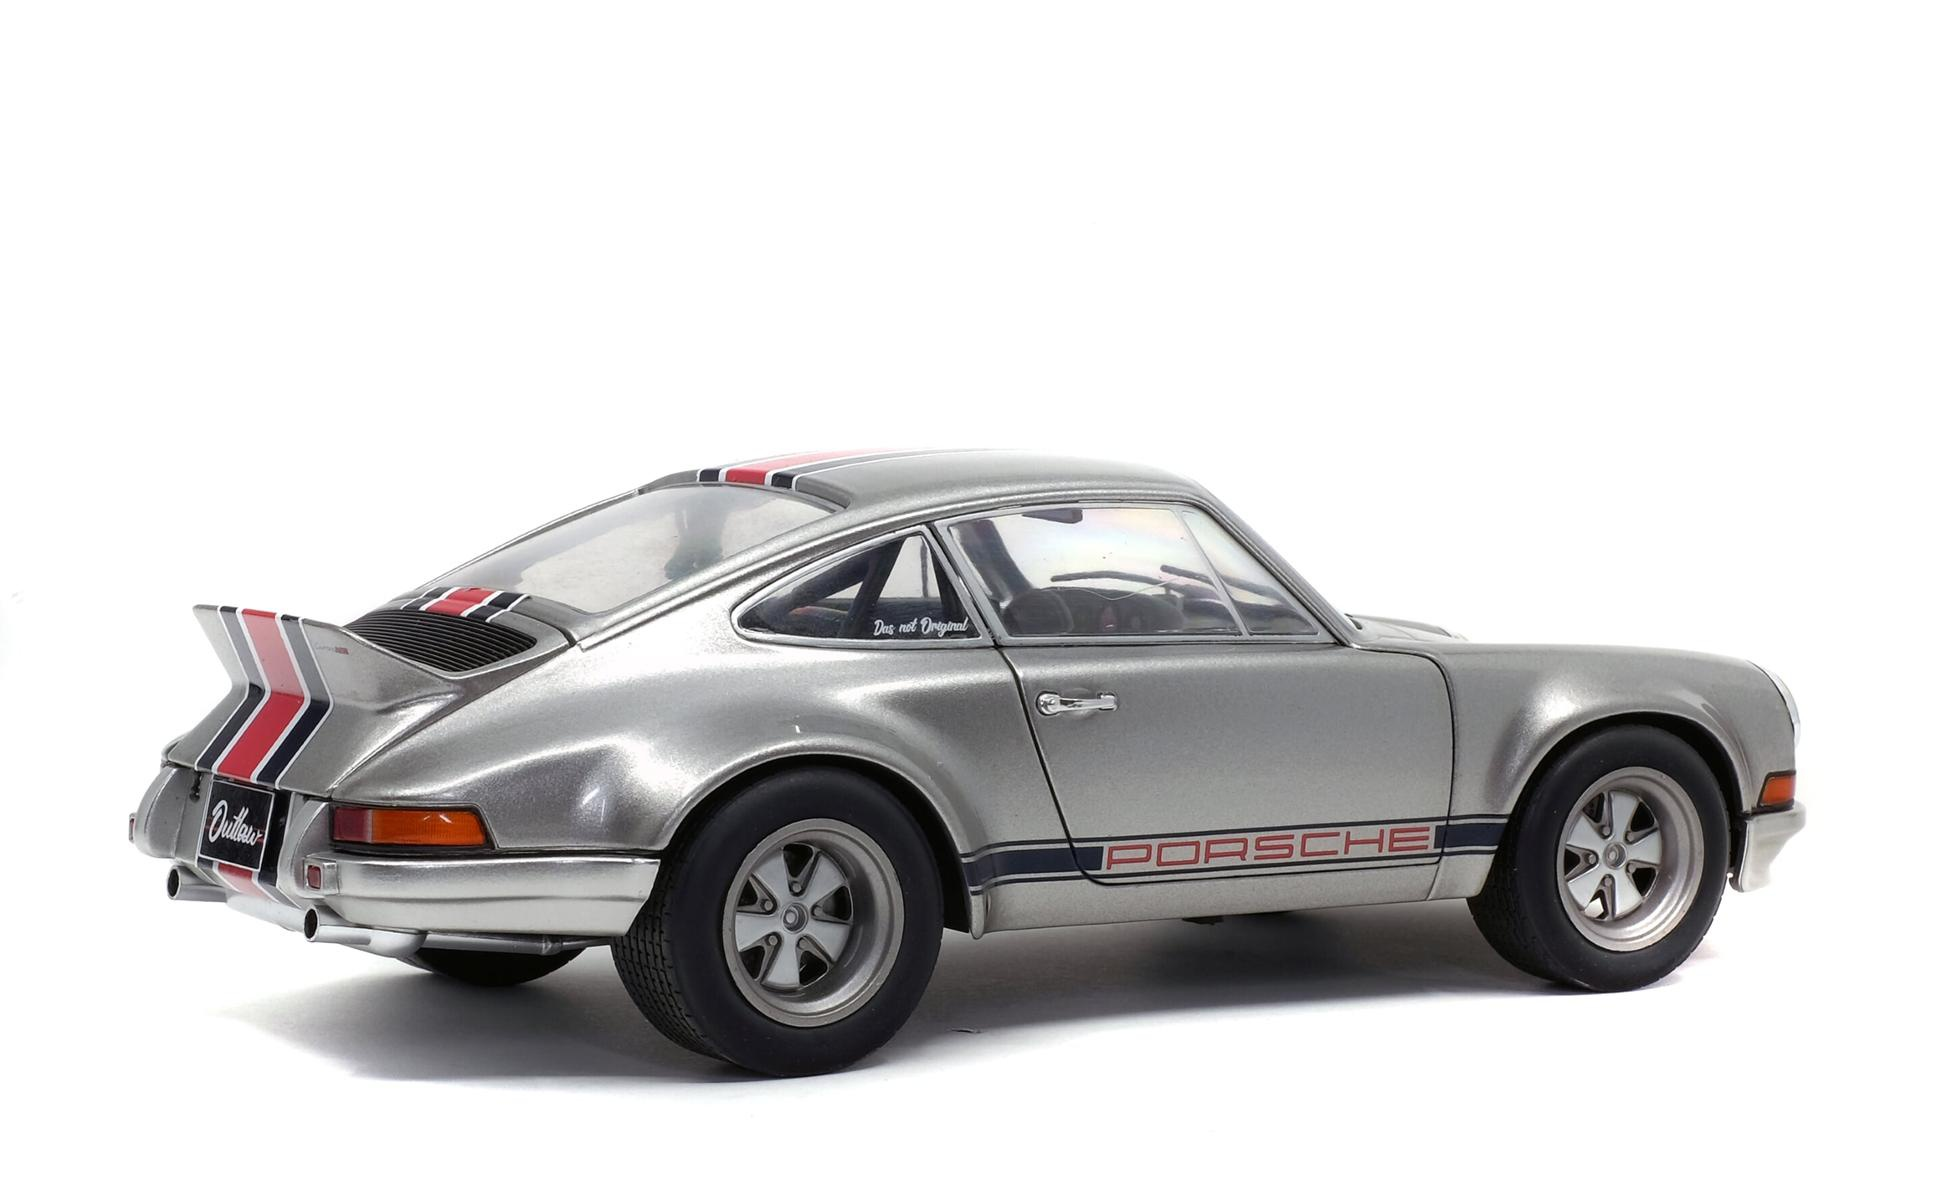 Porsche 911 RSR Backdating Outlaw